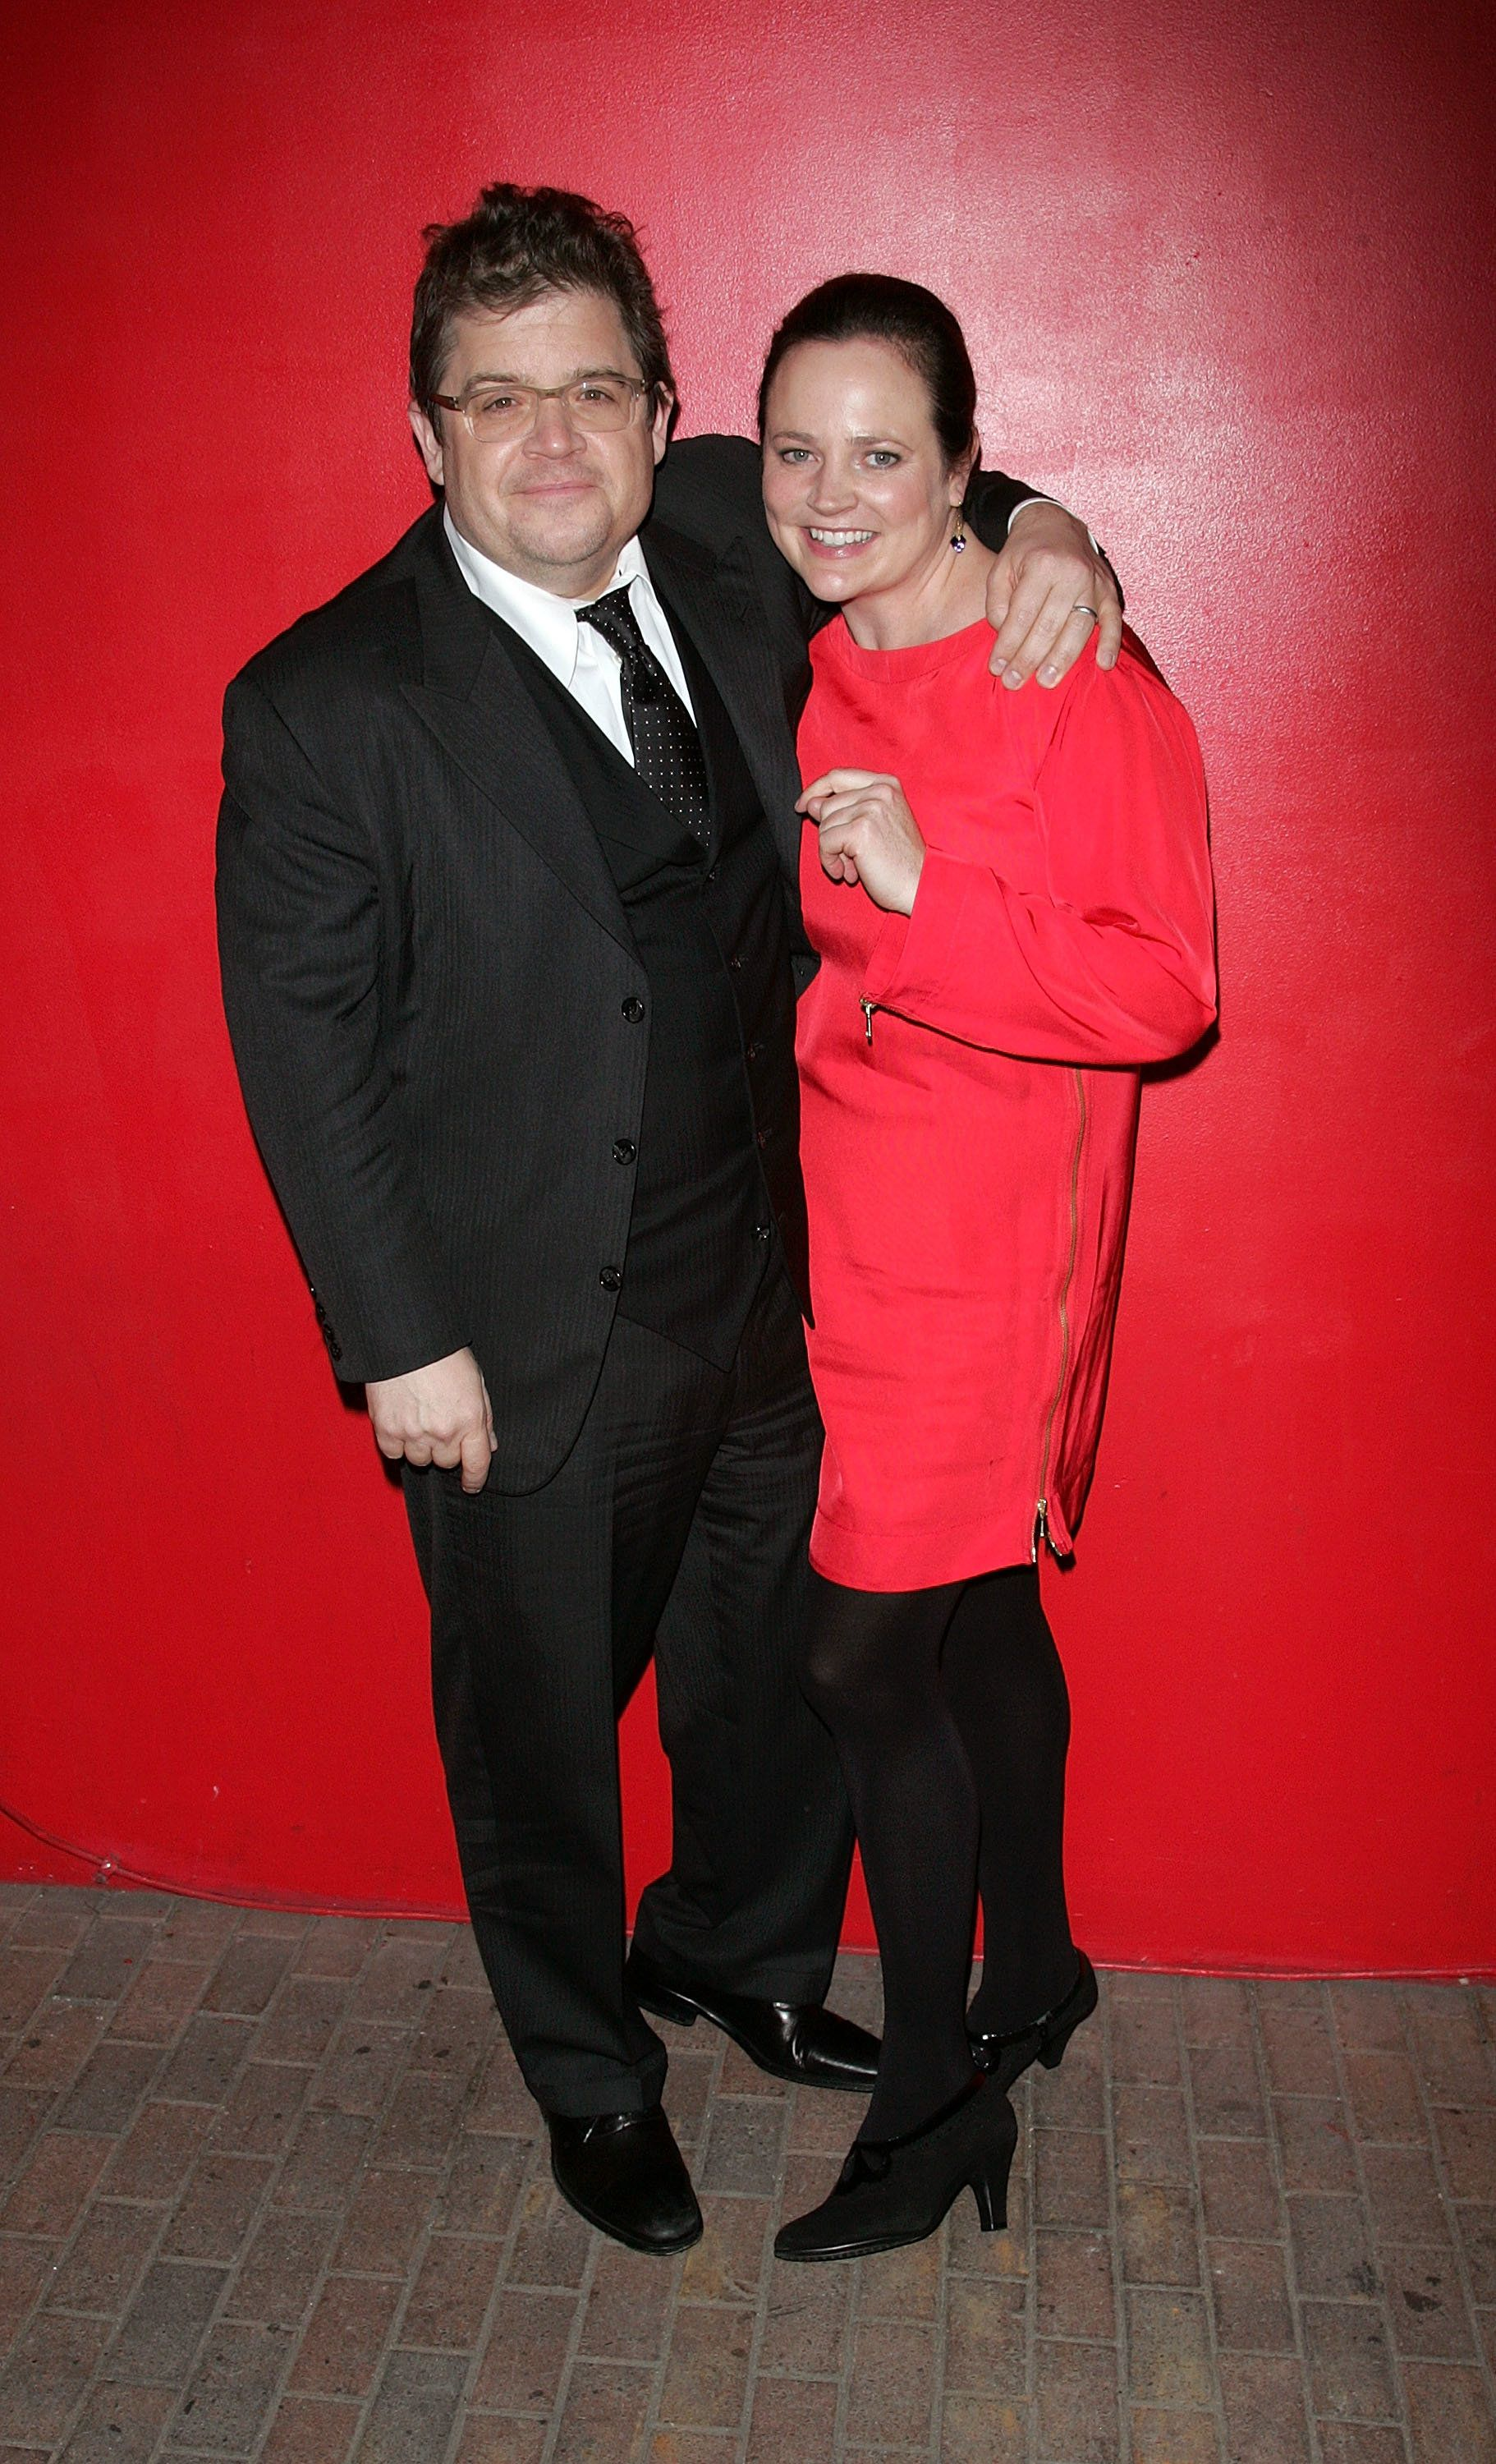 NEW YORK, NY - DECEMBER 08: Patton Oswalt and Michelle McNamara attend the 'Young Adult' world premiere after party at the Hudson Terrace on December 8, 2011 in New York City.  (Photo by Jim Spellman/WireImage)